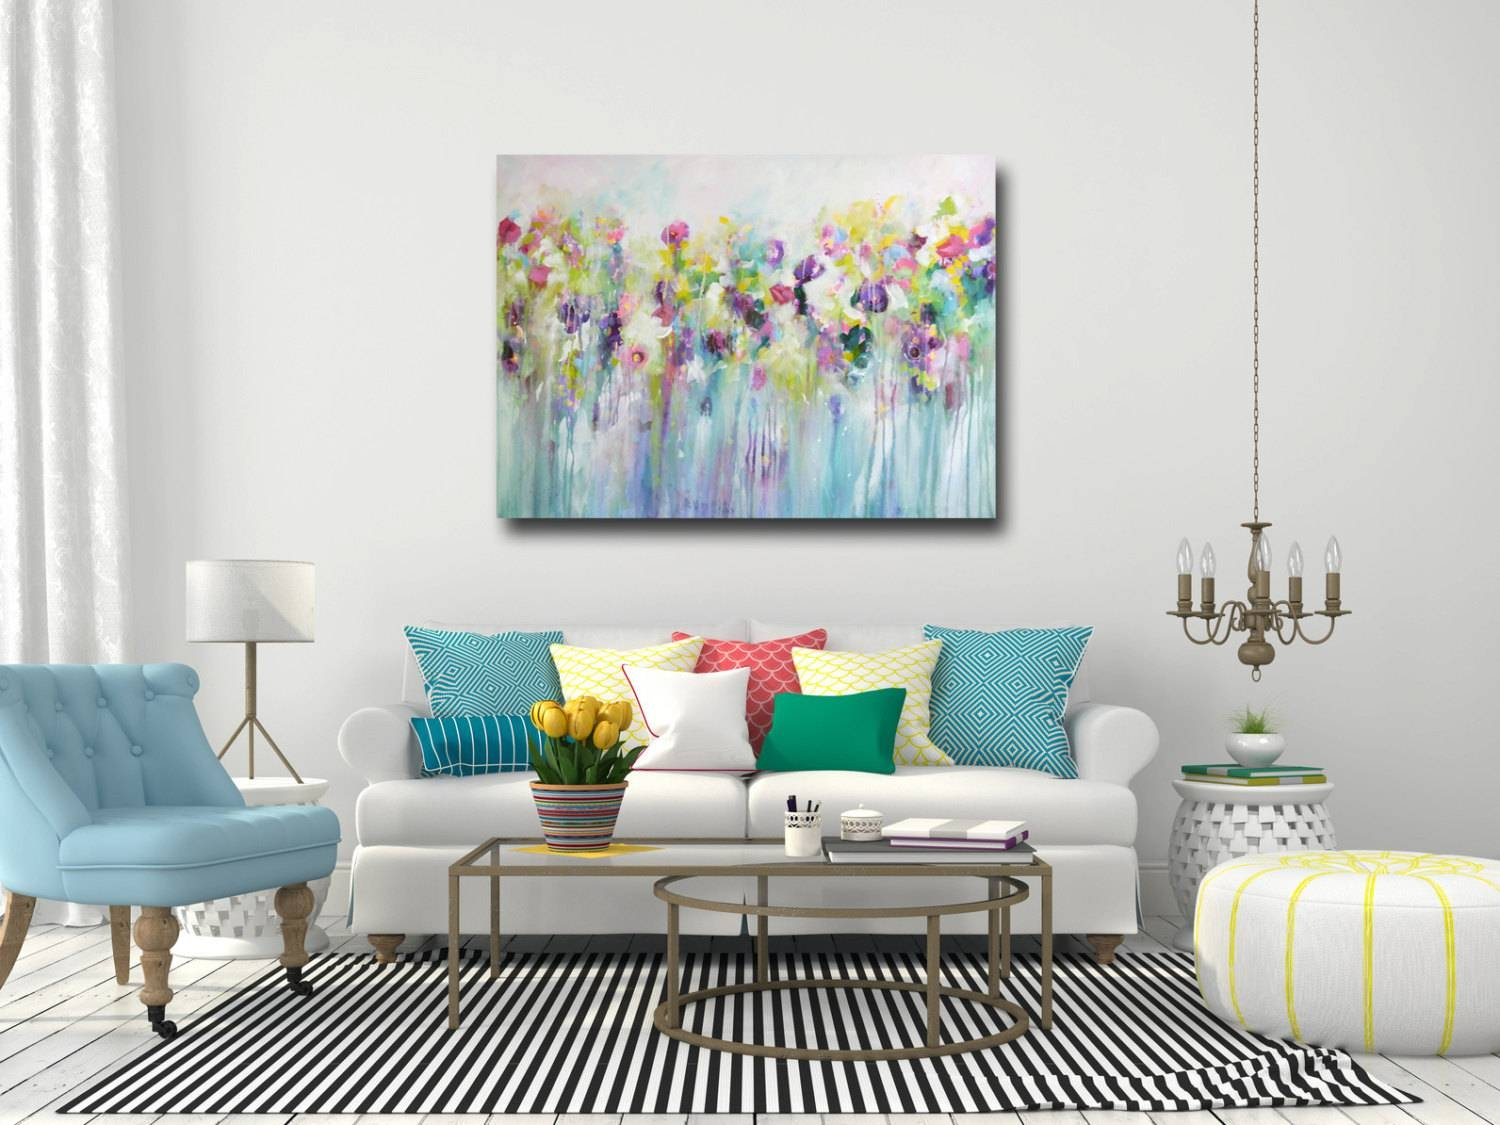 Large Wall Art Canvas Art Abstract Floral Canvas Print Intended For Current Flower Wall Art Canvas (View 11 of 20)